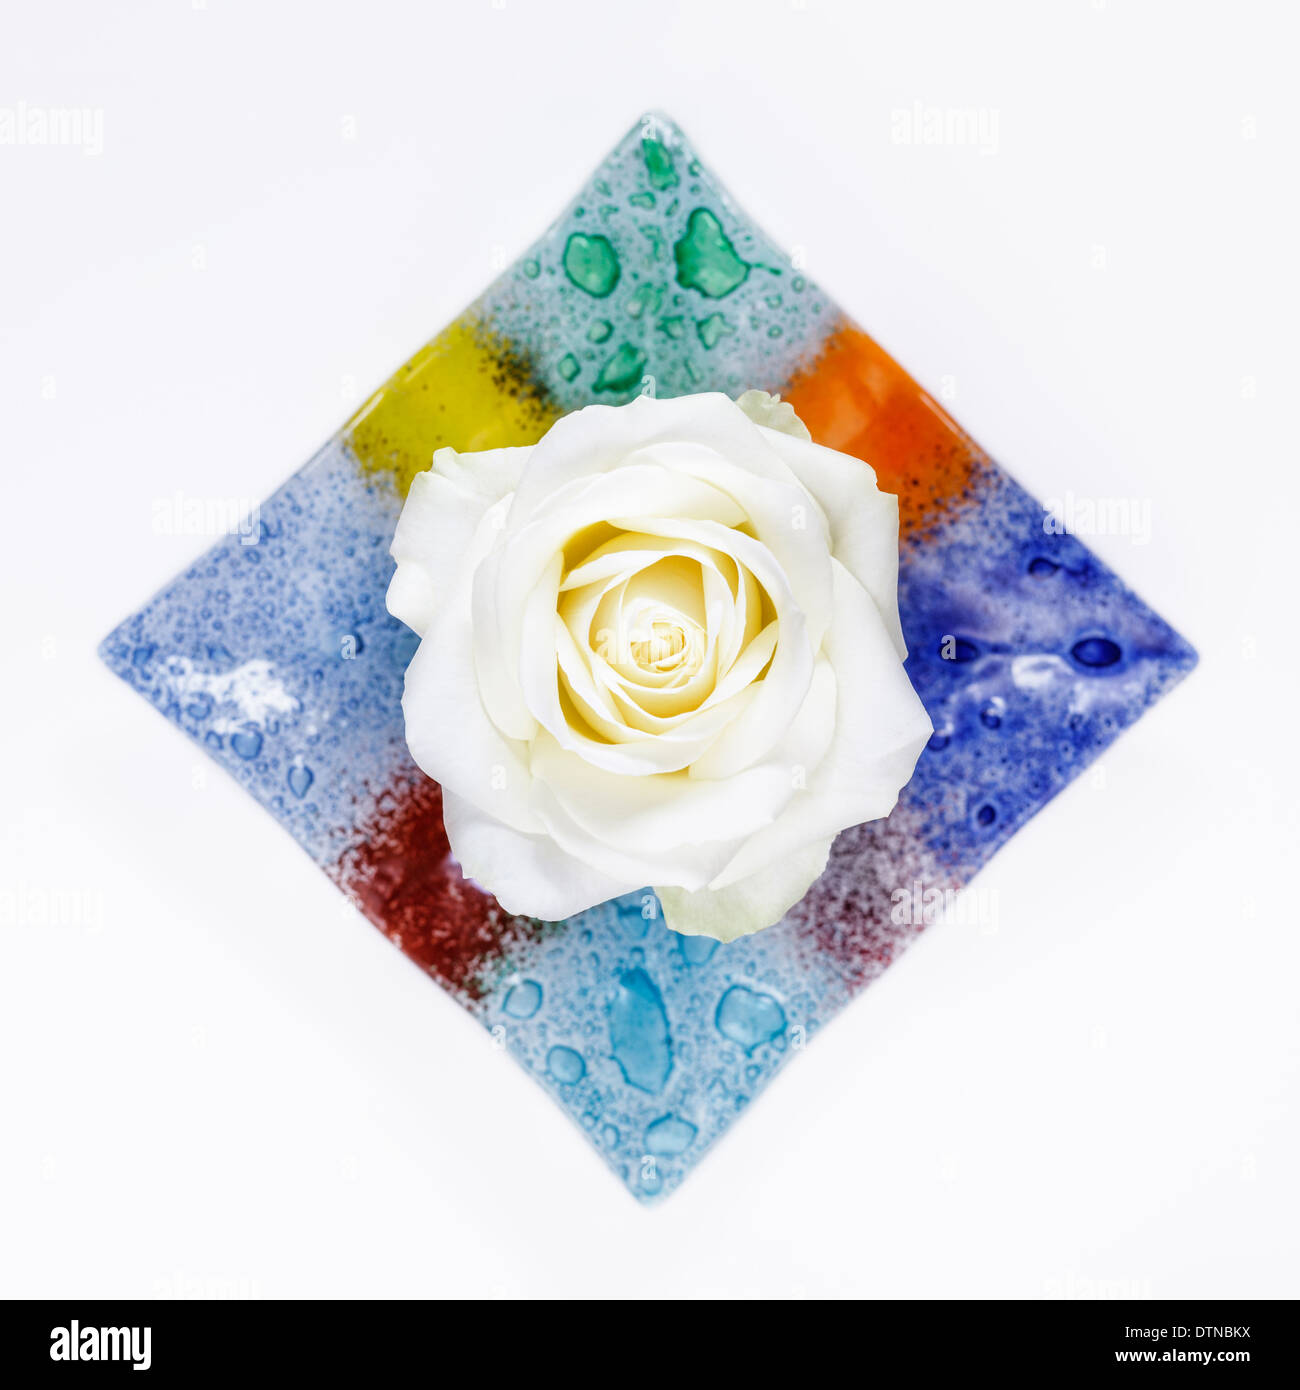 White rose in colored glass bowl - Stock Image